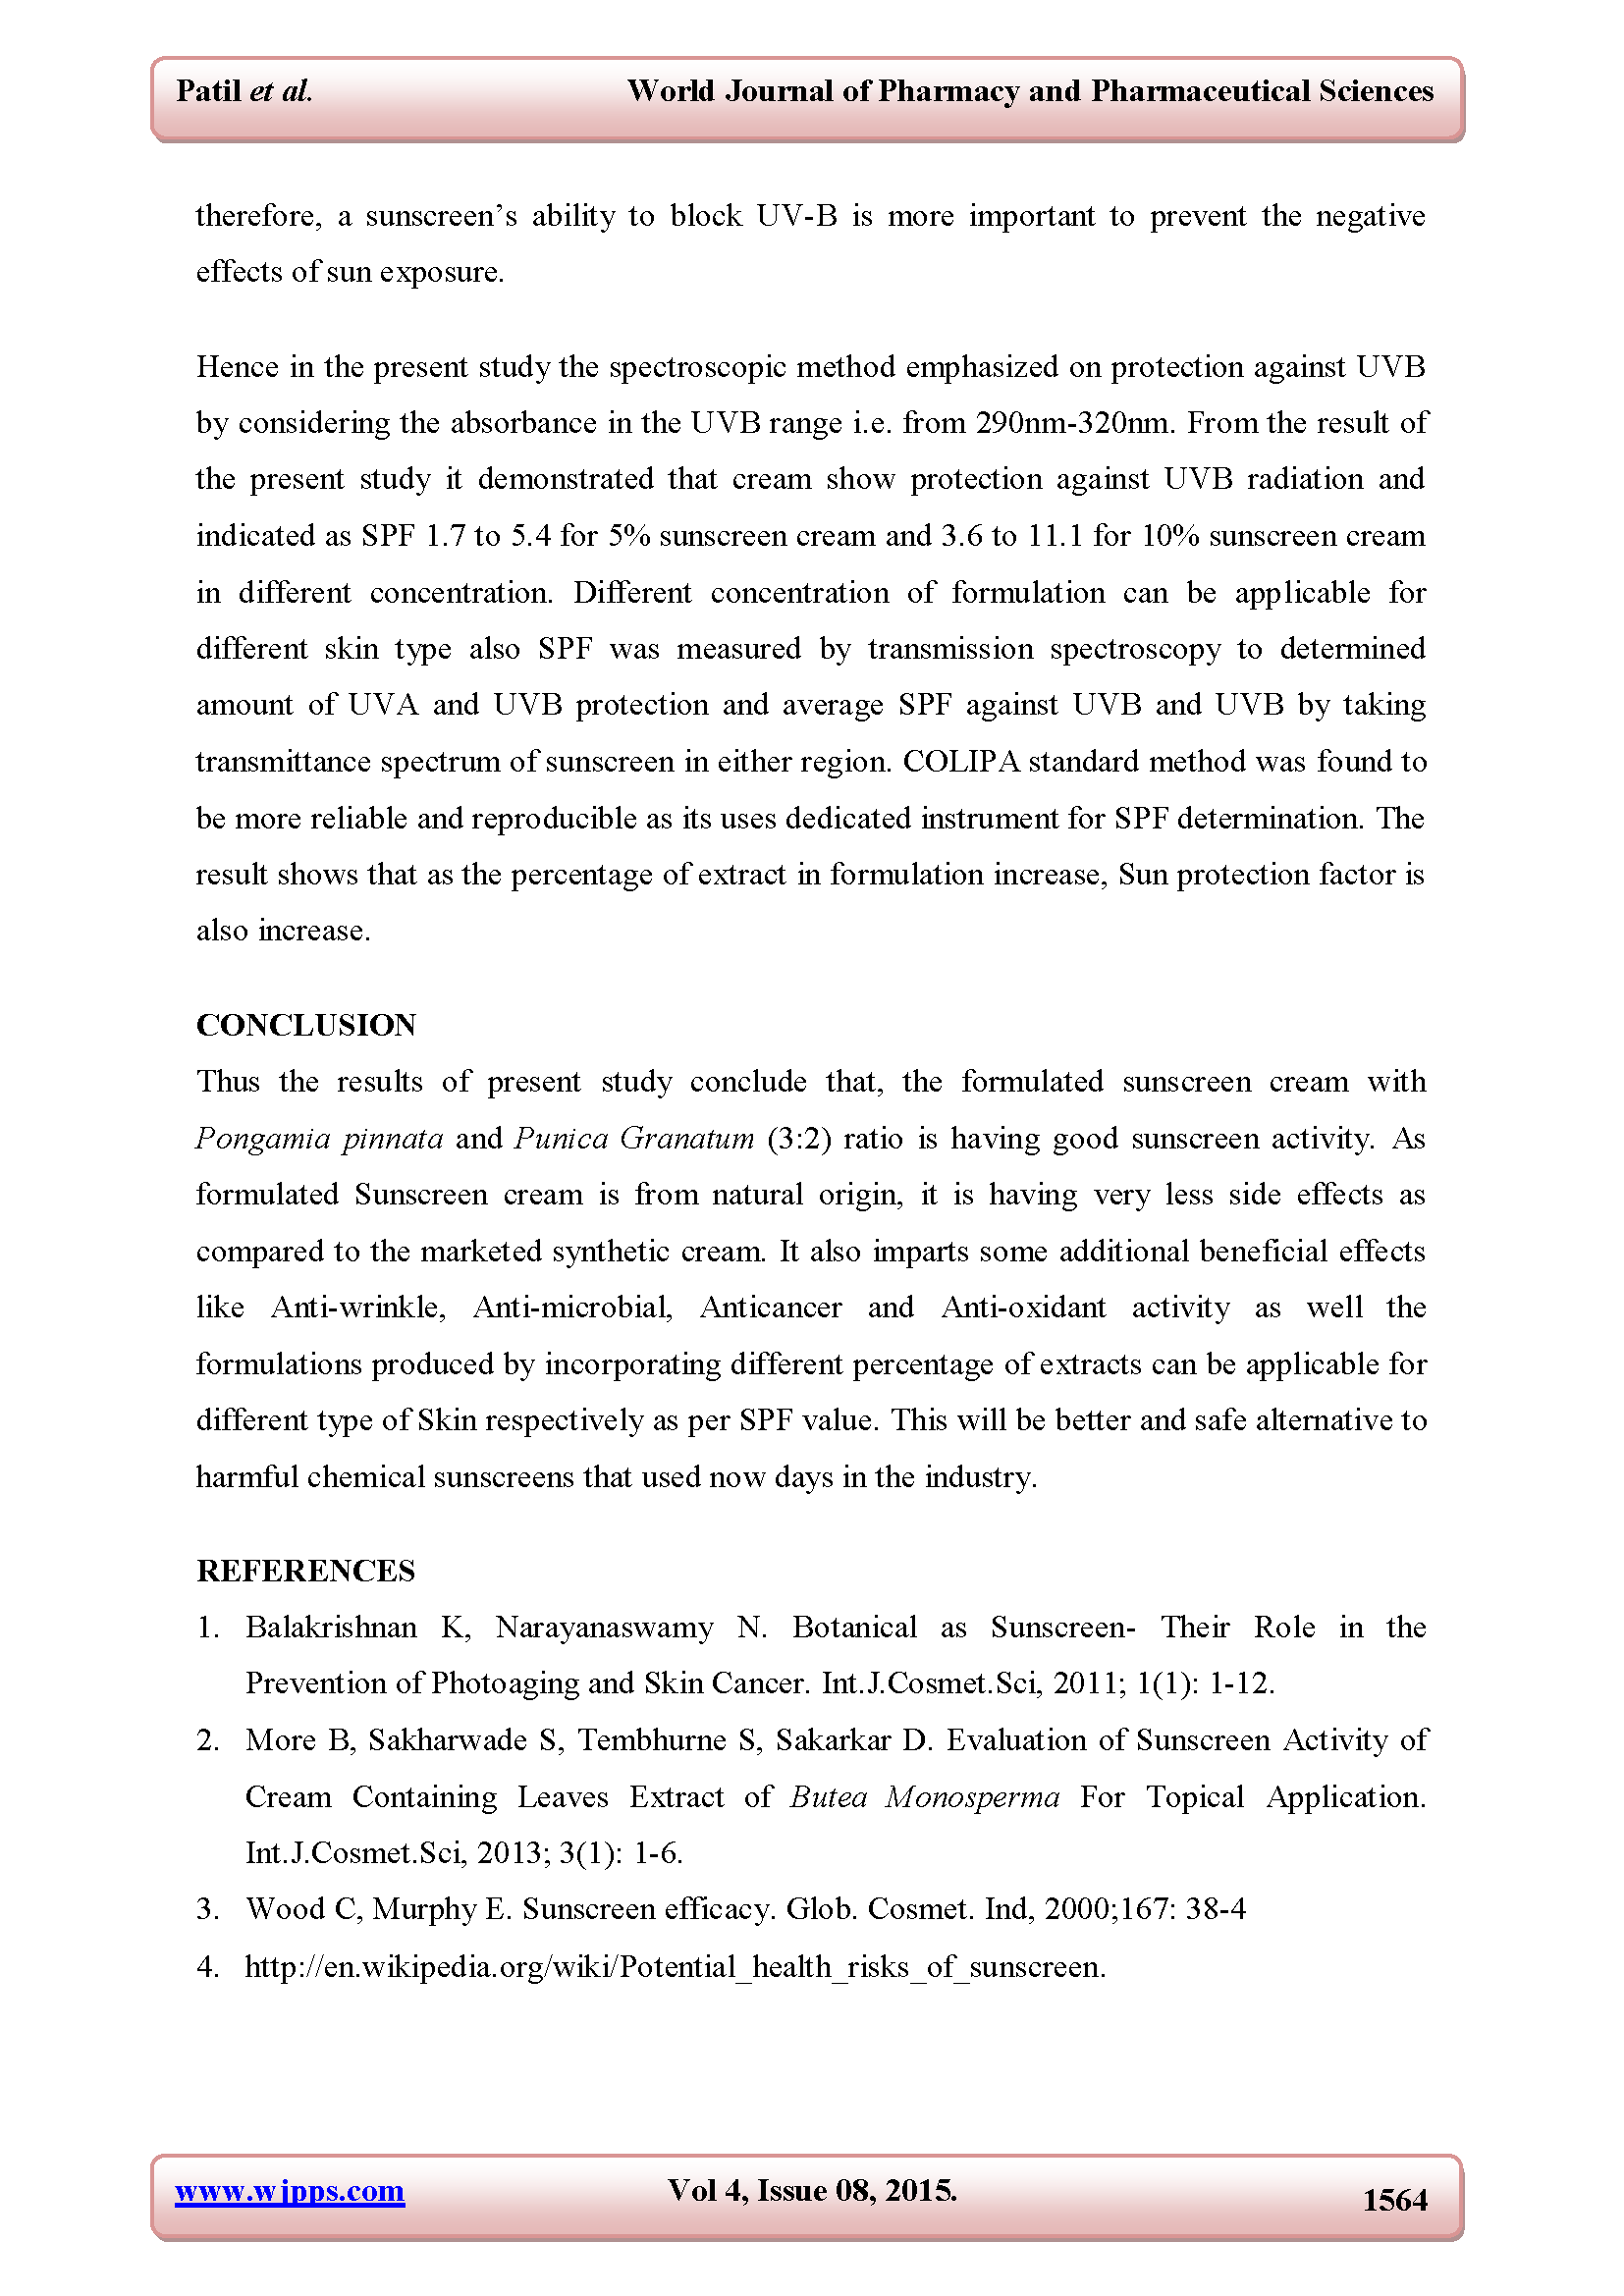 DETERMINATION OF SUN PROTECTION EFFECT OF HERBAL SUNSCREEN CREAM Page 11